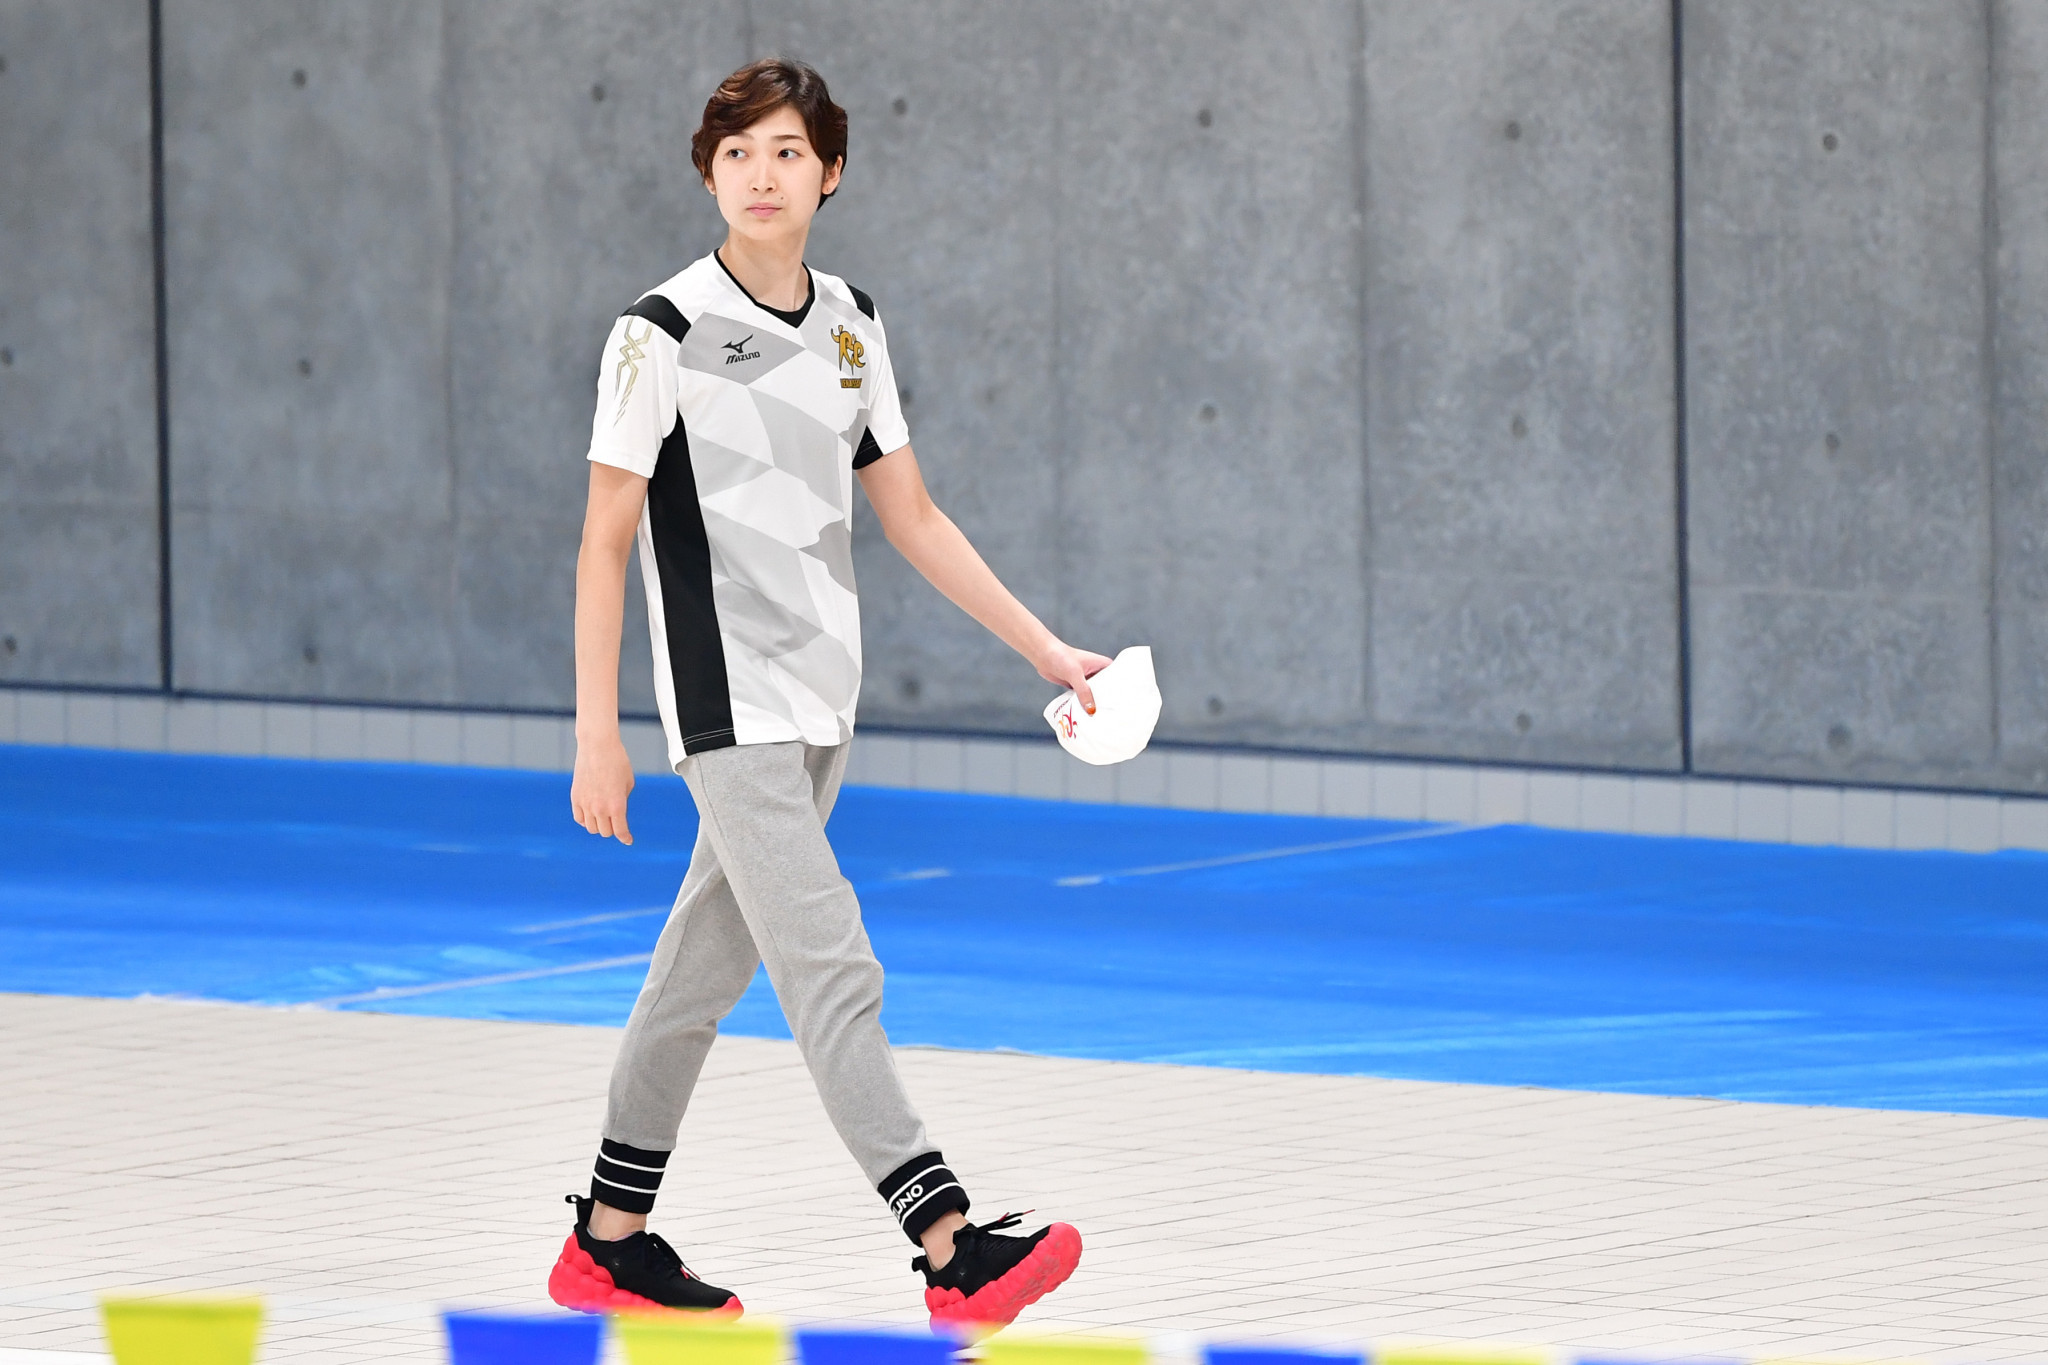 Rikako Ikee was part of the unveiling of the Tokyo 2020 Aquatics Centre ©Getty Images